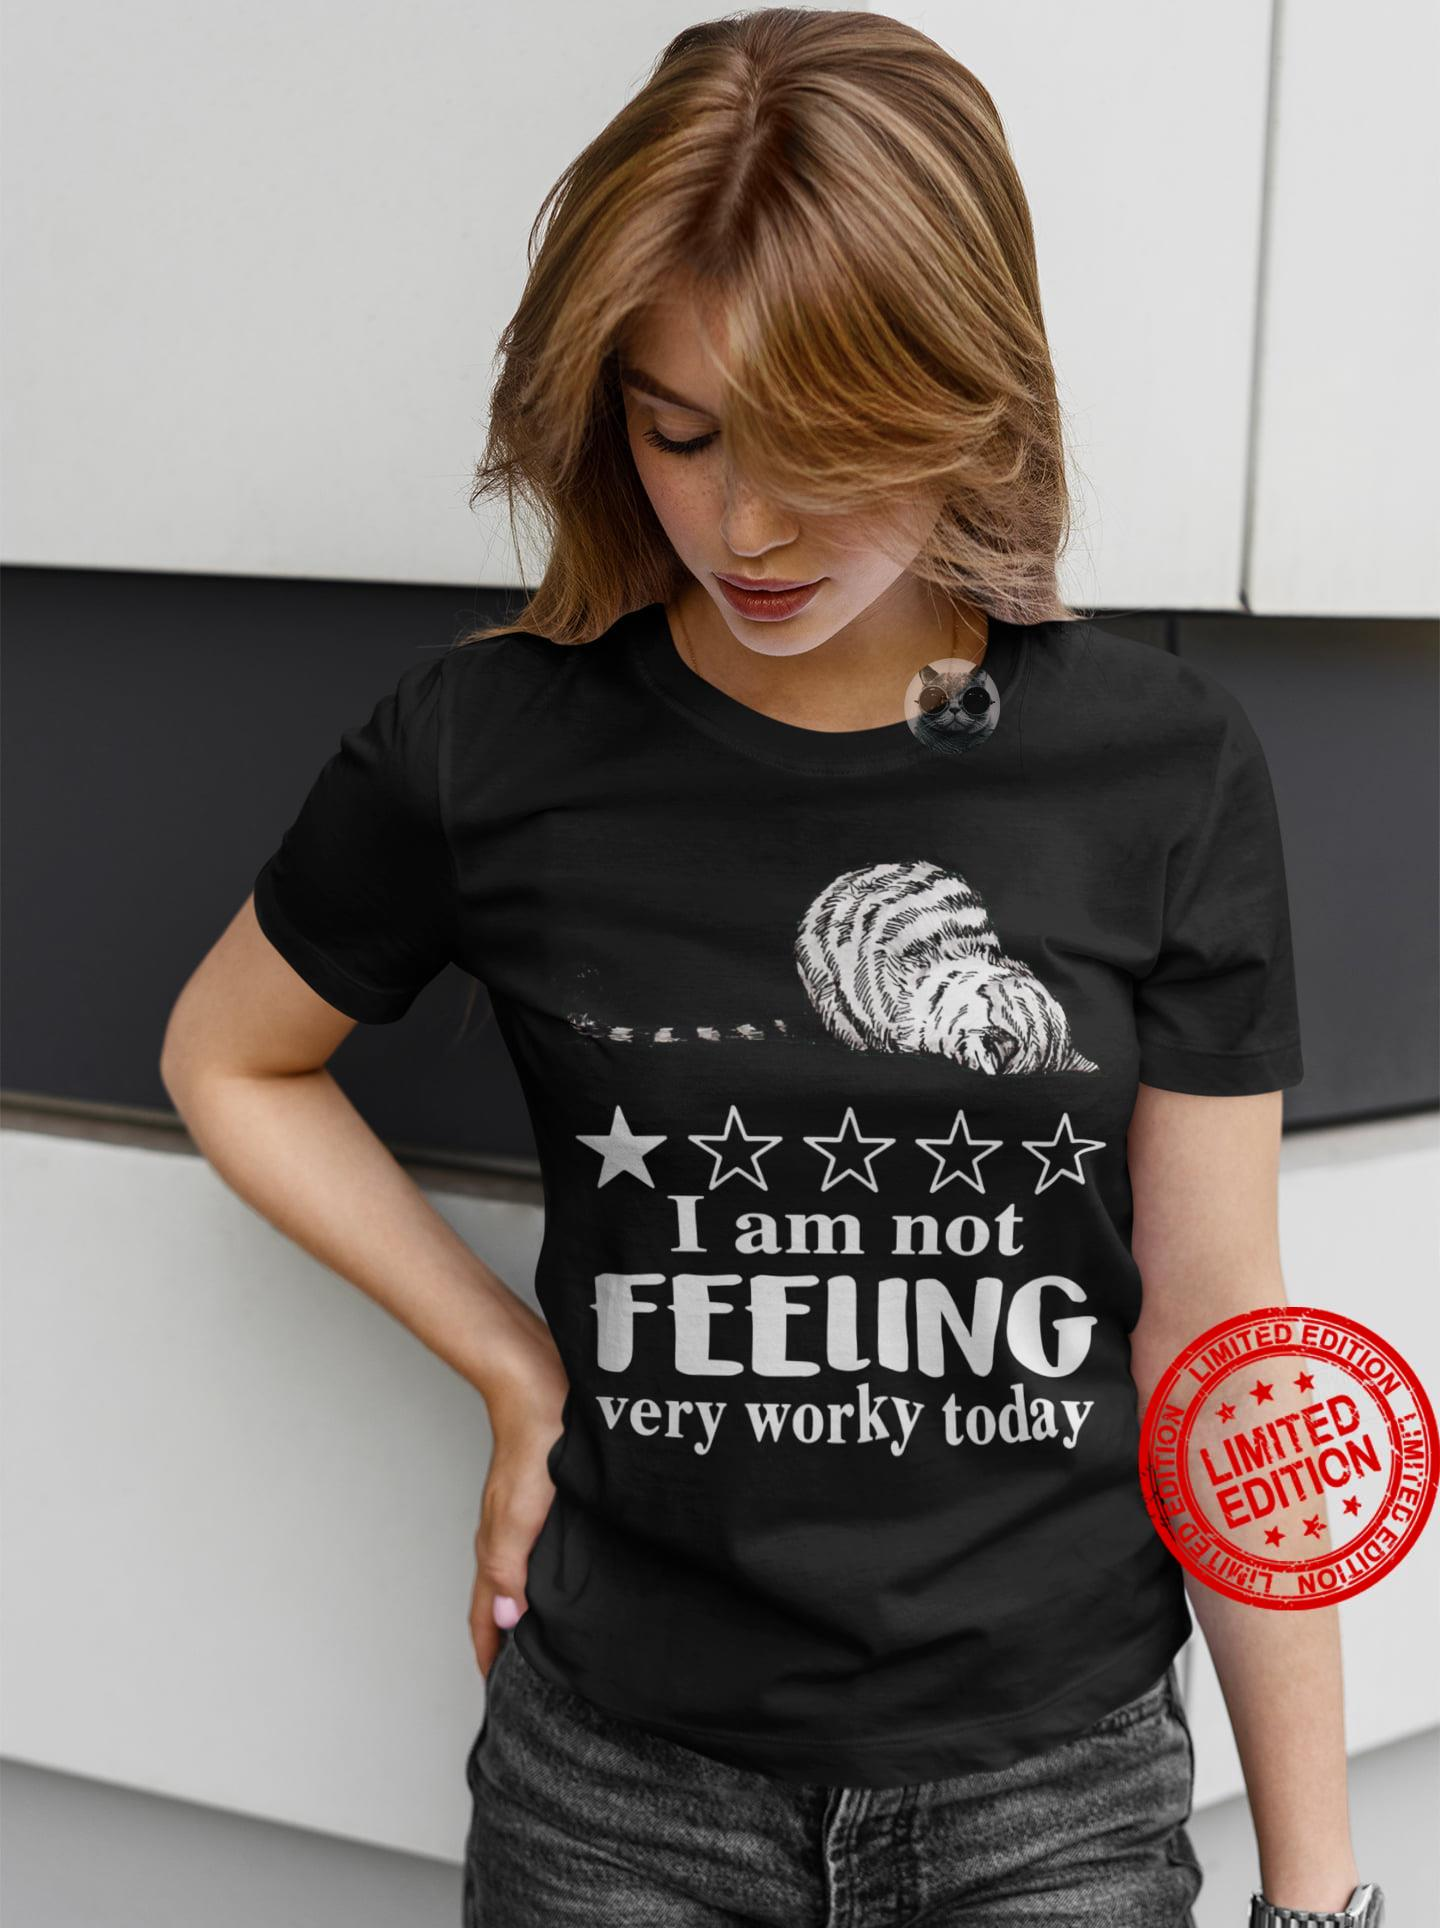 I Am Not Feeling very Worky Today Shirt